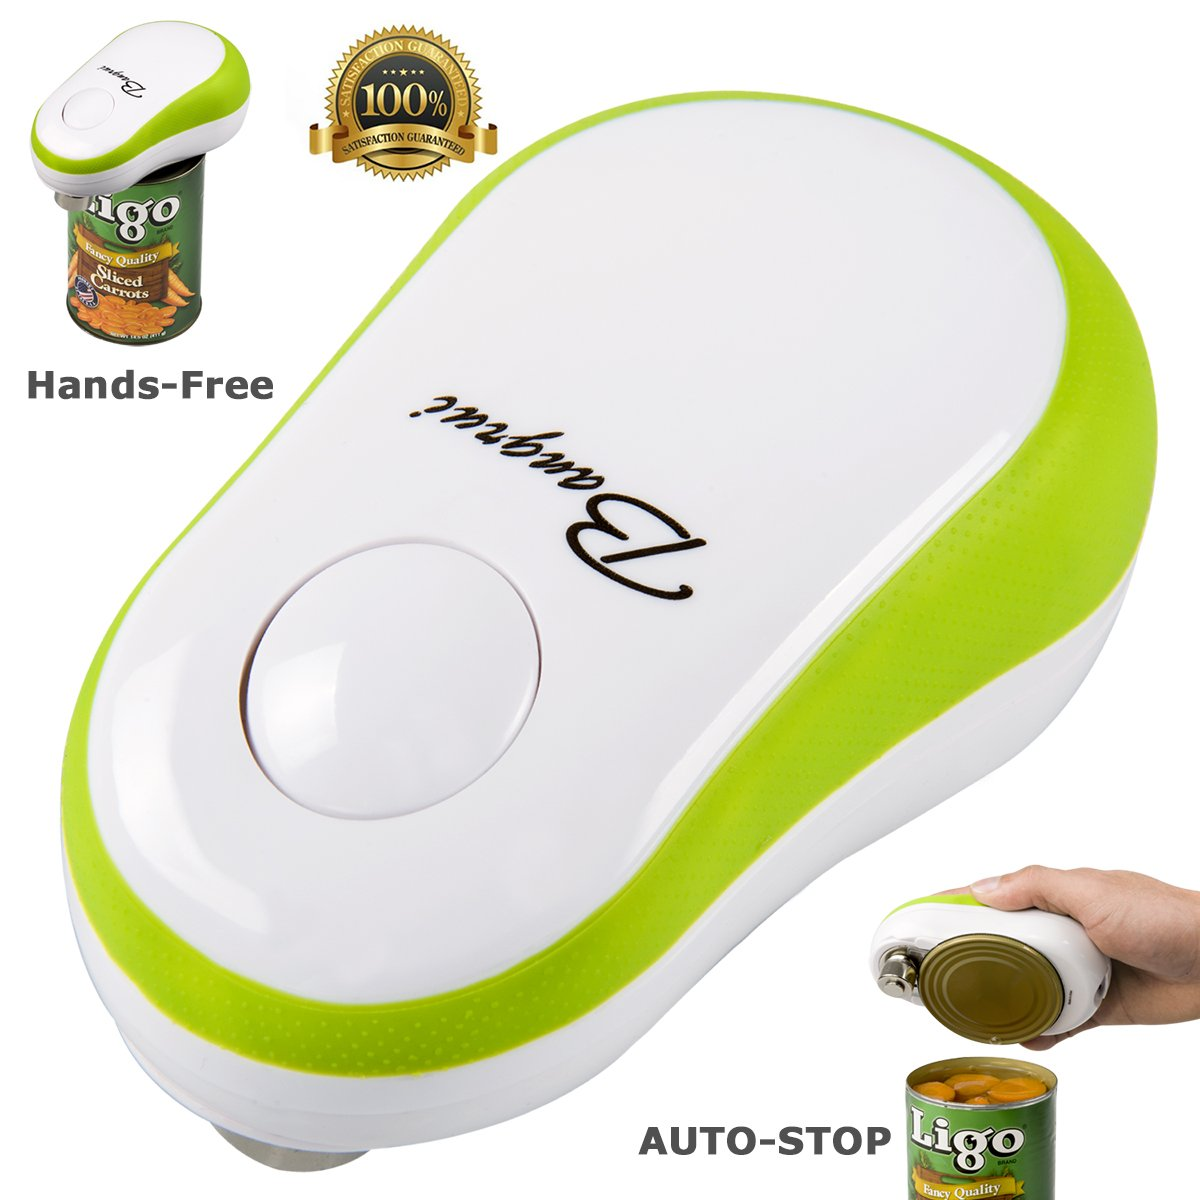 Home Kitchen Restaurant Mama Manual Automatic Safety Electric Can Opener:2019 Updated (Bangrui) Intellectual Electric Can Opener:Smooth Edge,Stop Automatically,a Good Helper in Cooking! (Green) by BangRui